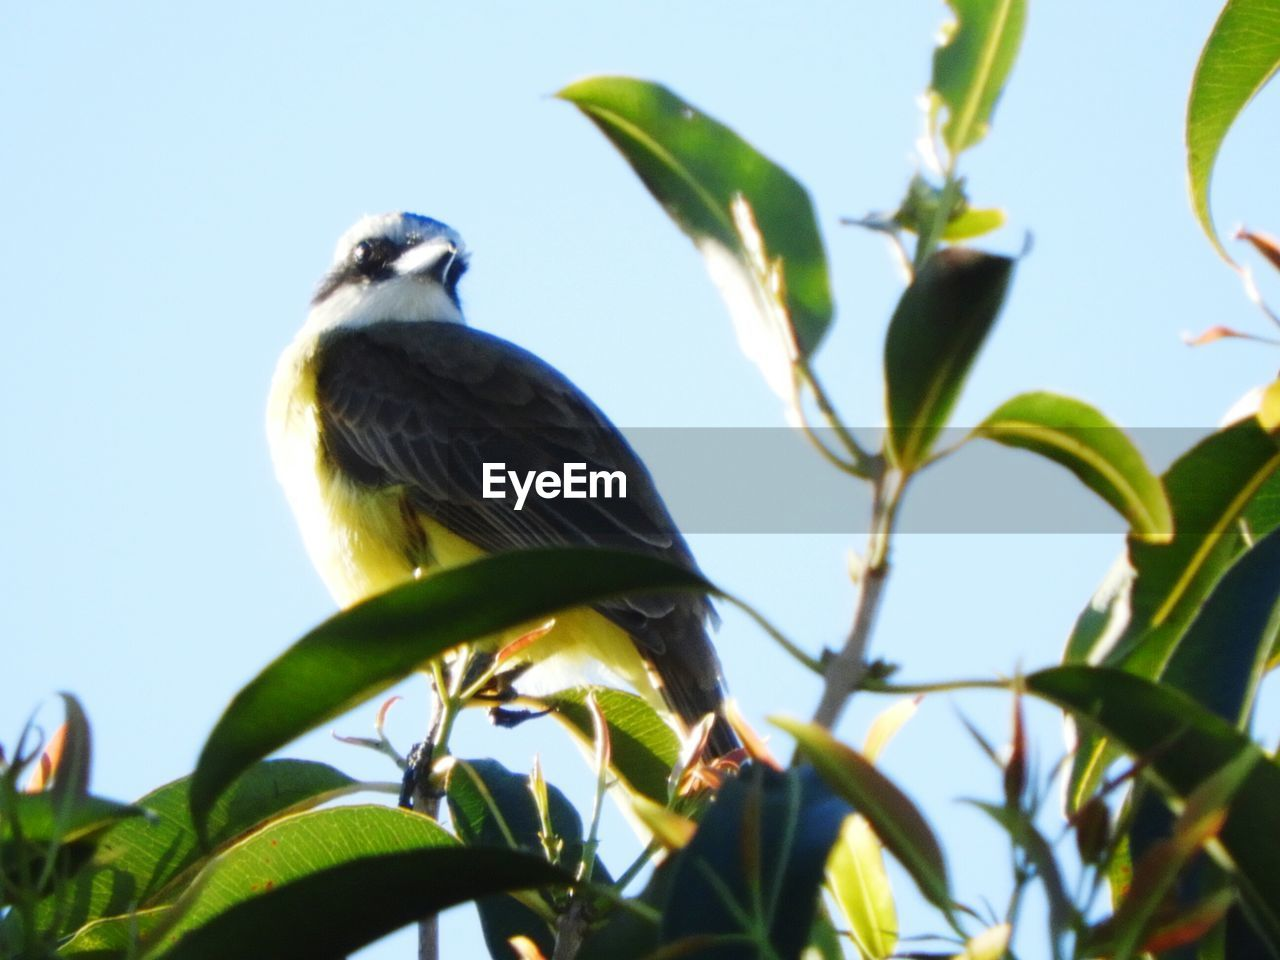 animals in the wild, bird, one animal, animal themes, leaf, animal wildlife, low angle view, perching, nature, day, clear sky, tree, branch, outdoors, no people, green color, plant, beauty in nature, sky, beak, close-up